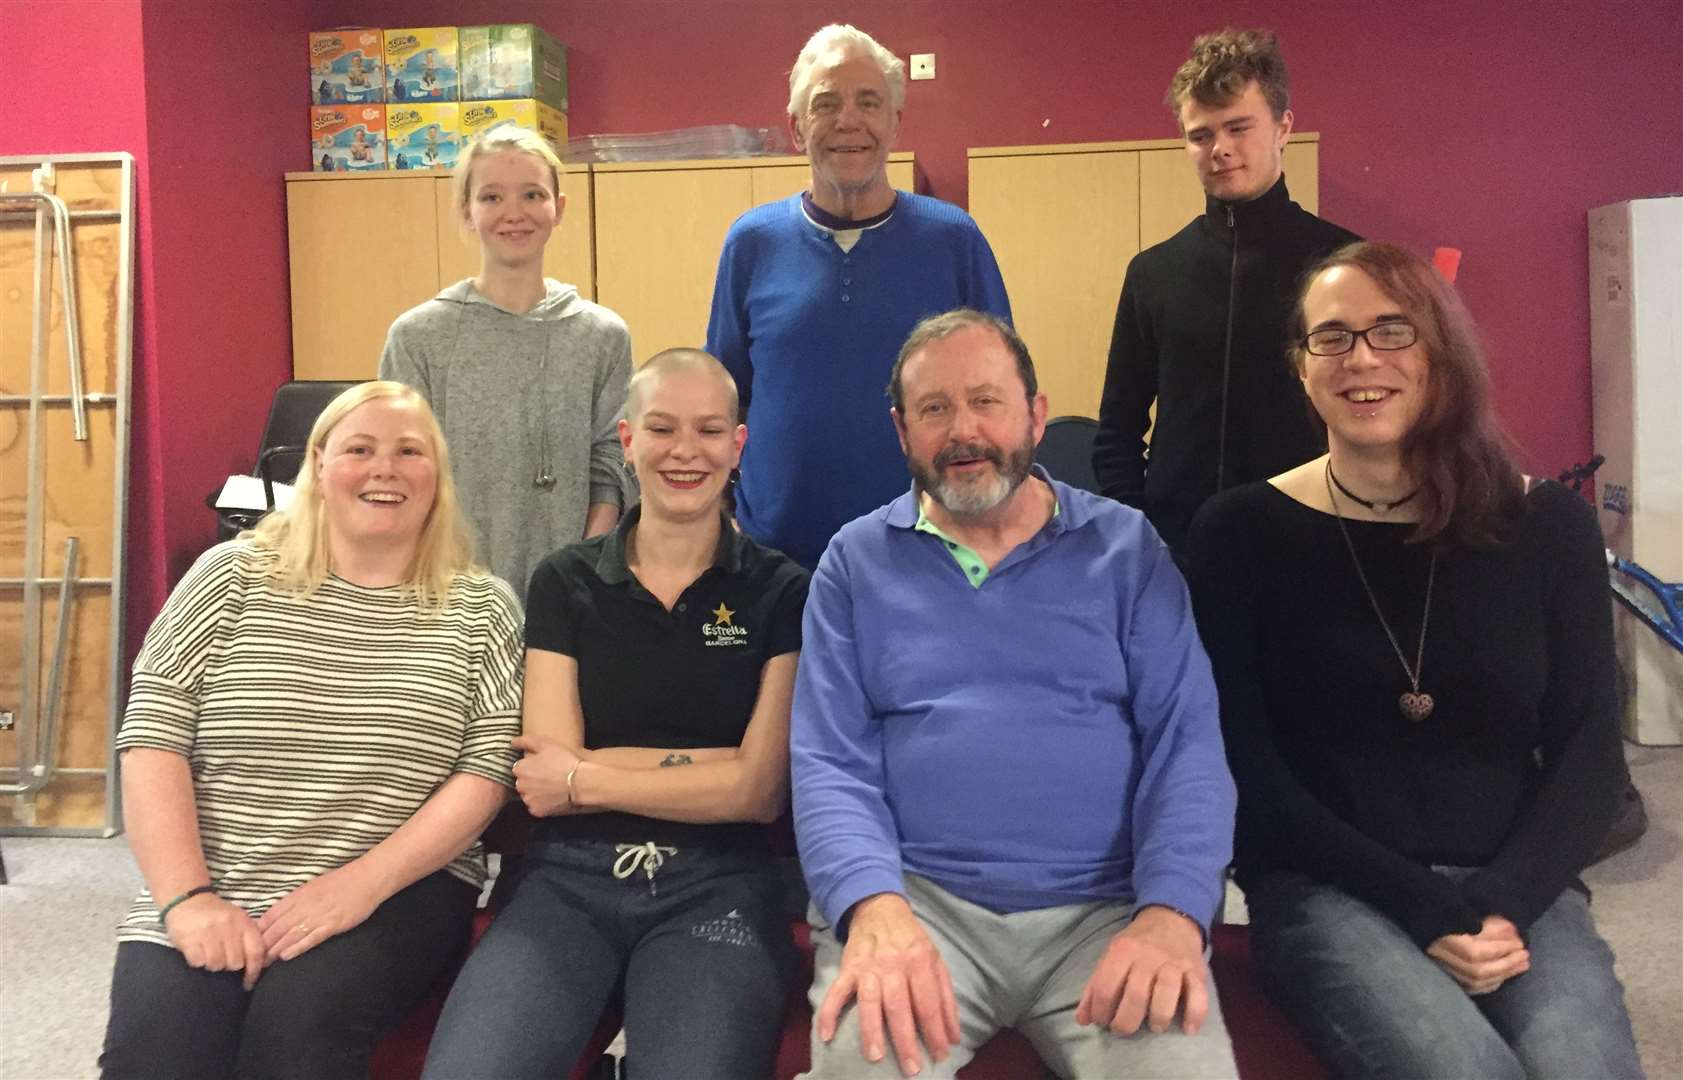 New Players' production will be performed at Grantham's Guildhall